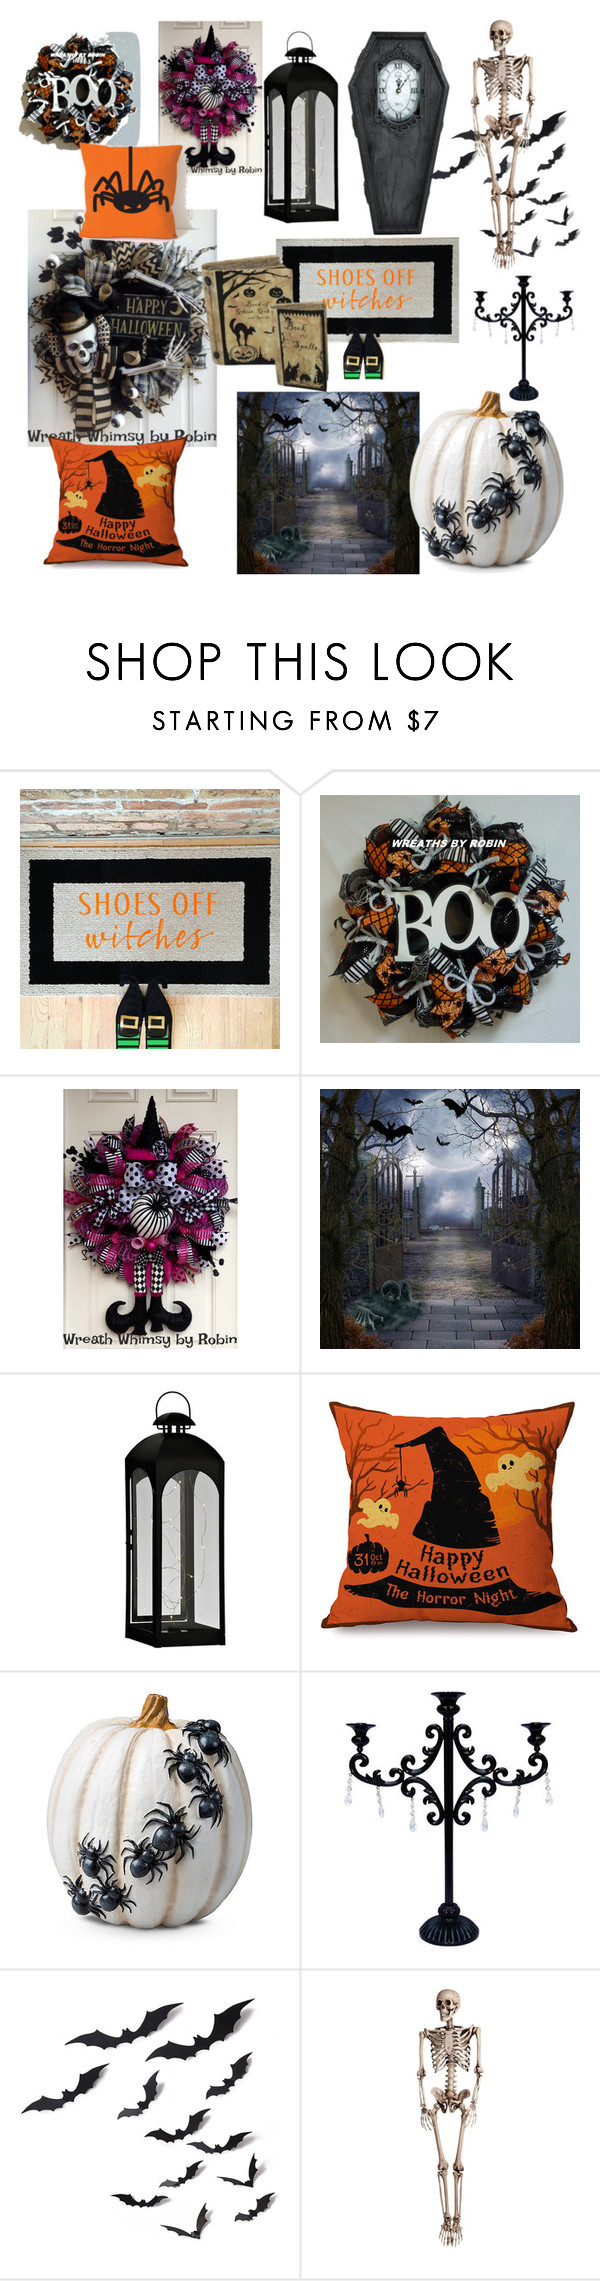 """""""halloween deco"""" by griselvega420 ❤ liked on Polyvore featuring interior, interiors, interior design, home, home decor, interior decorating, Improvements and Halloweenparty"""